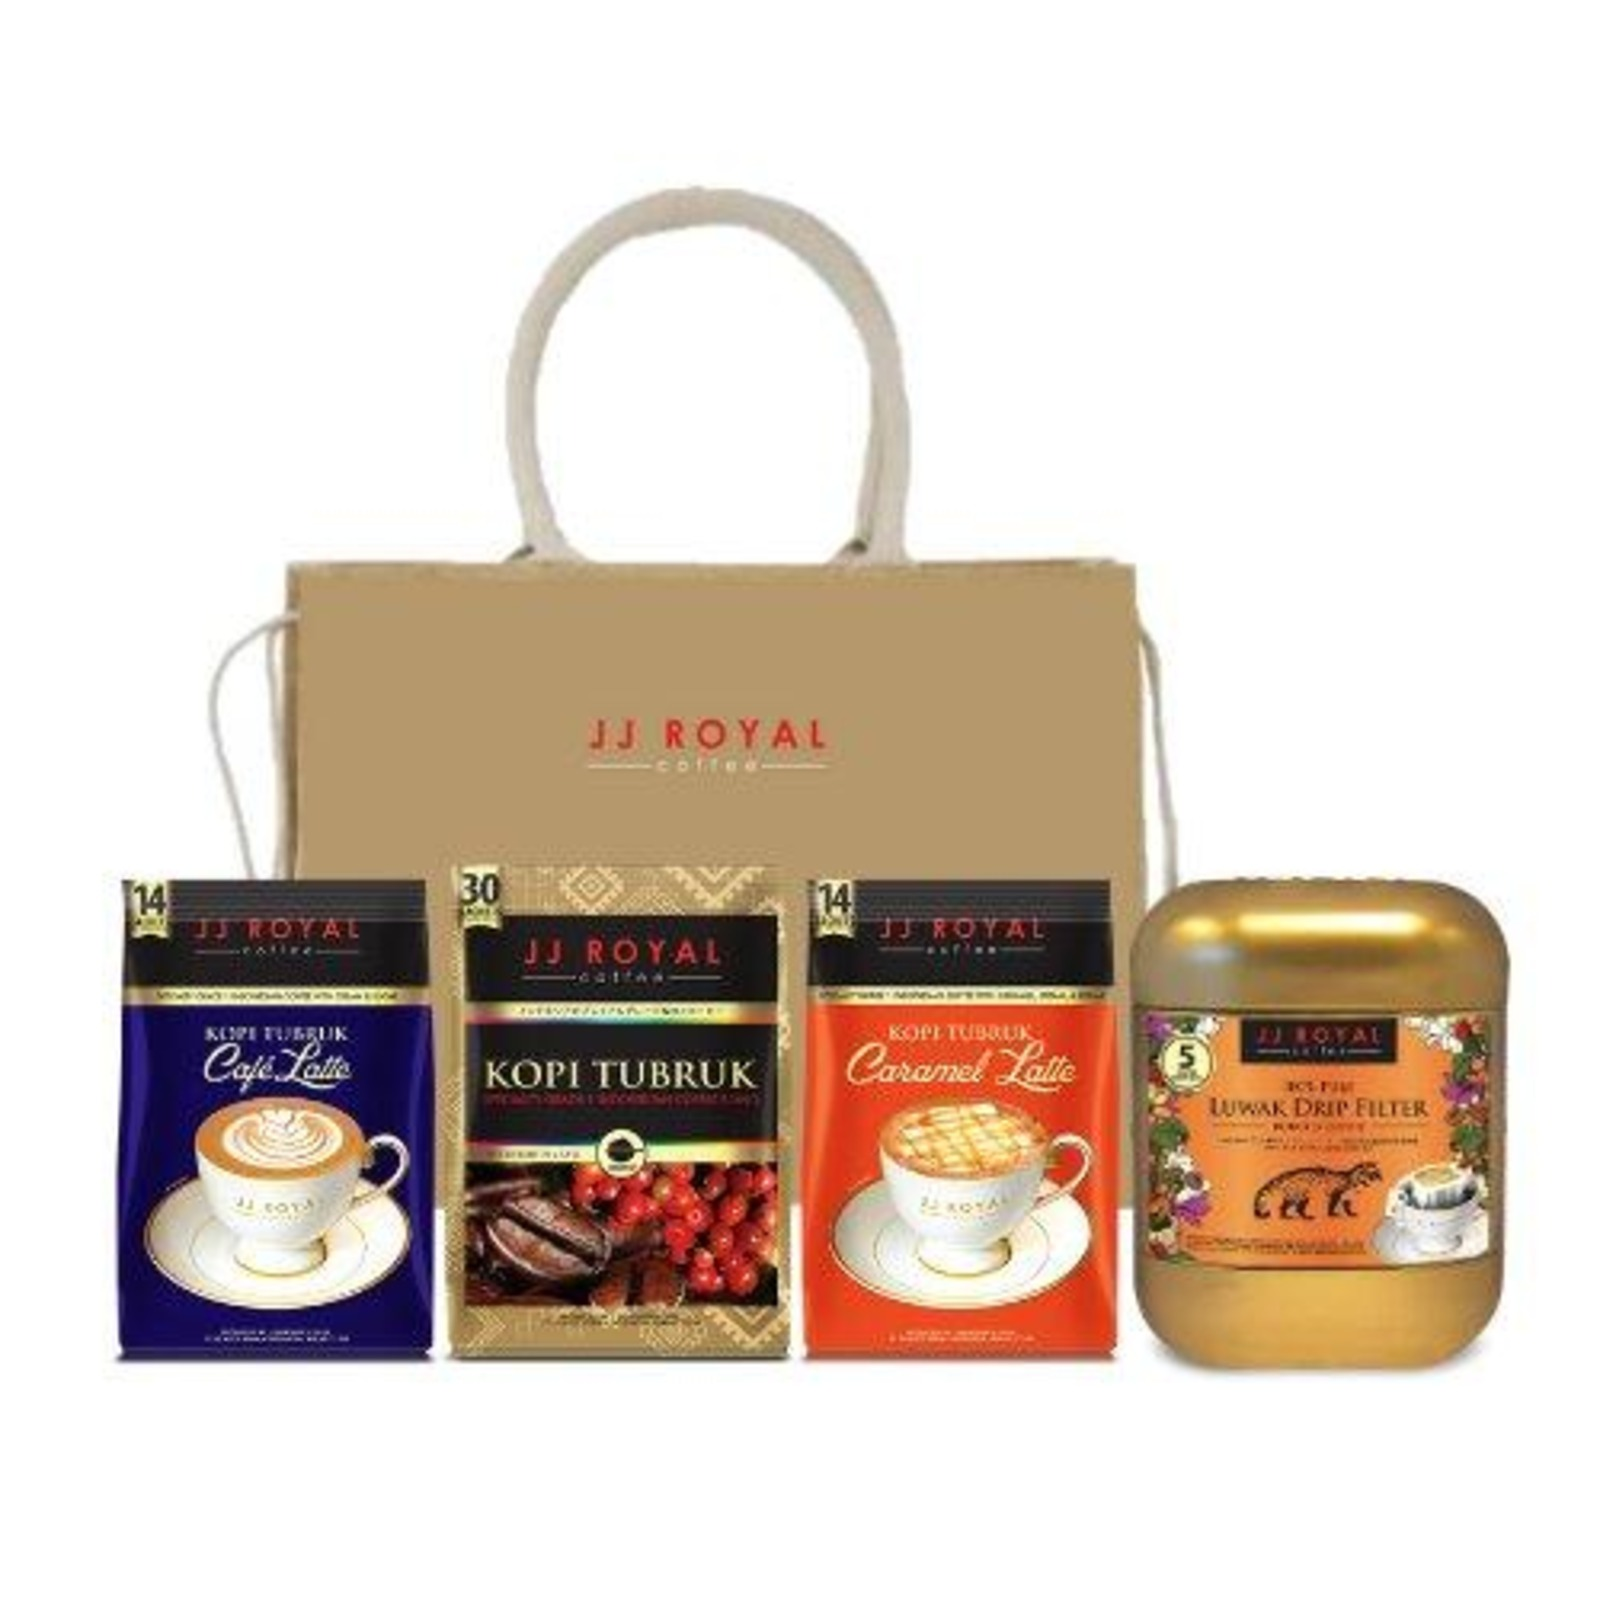 JJ Royal Coffee - Luxurious Latte Gift Set 1 (Premix)